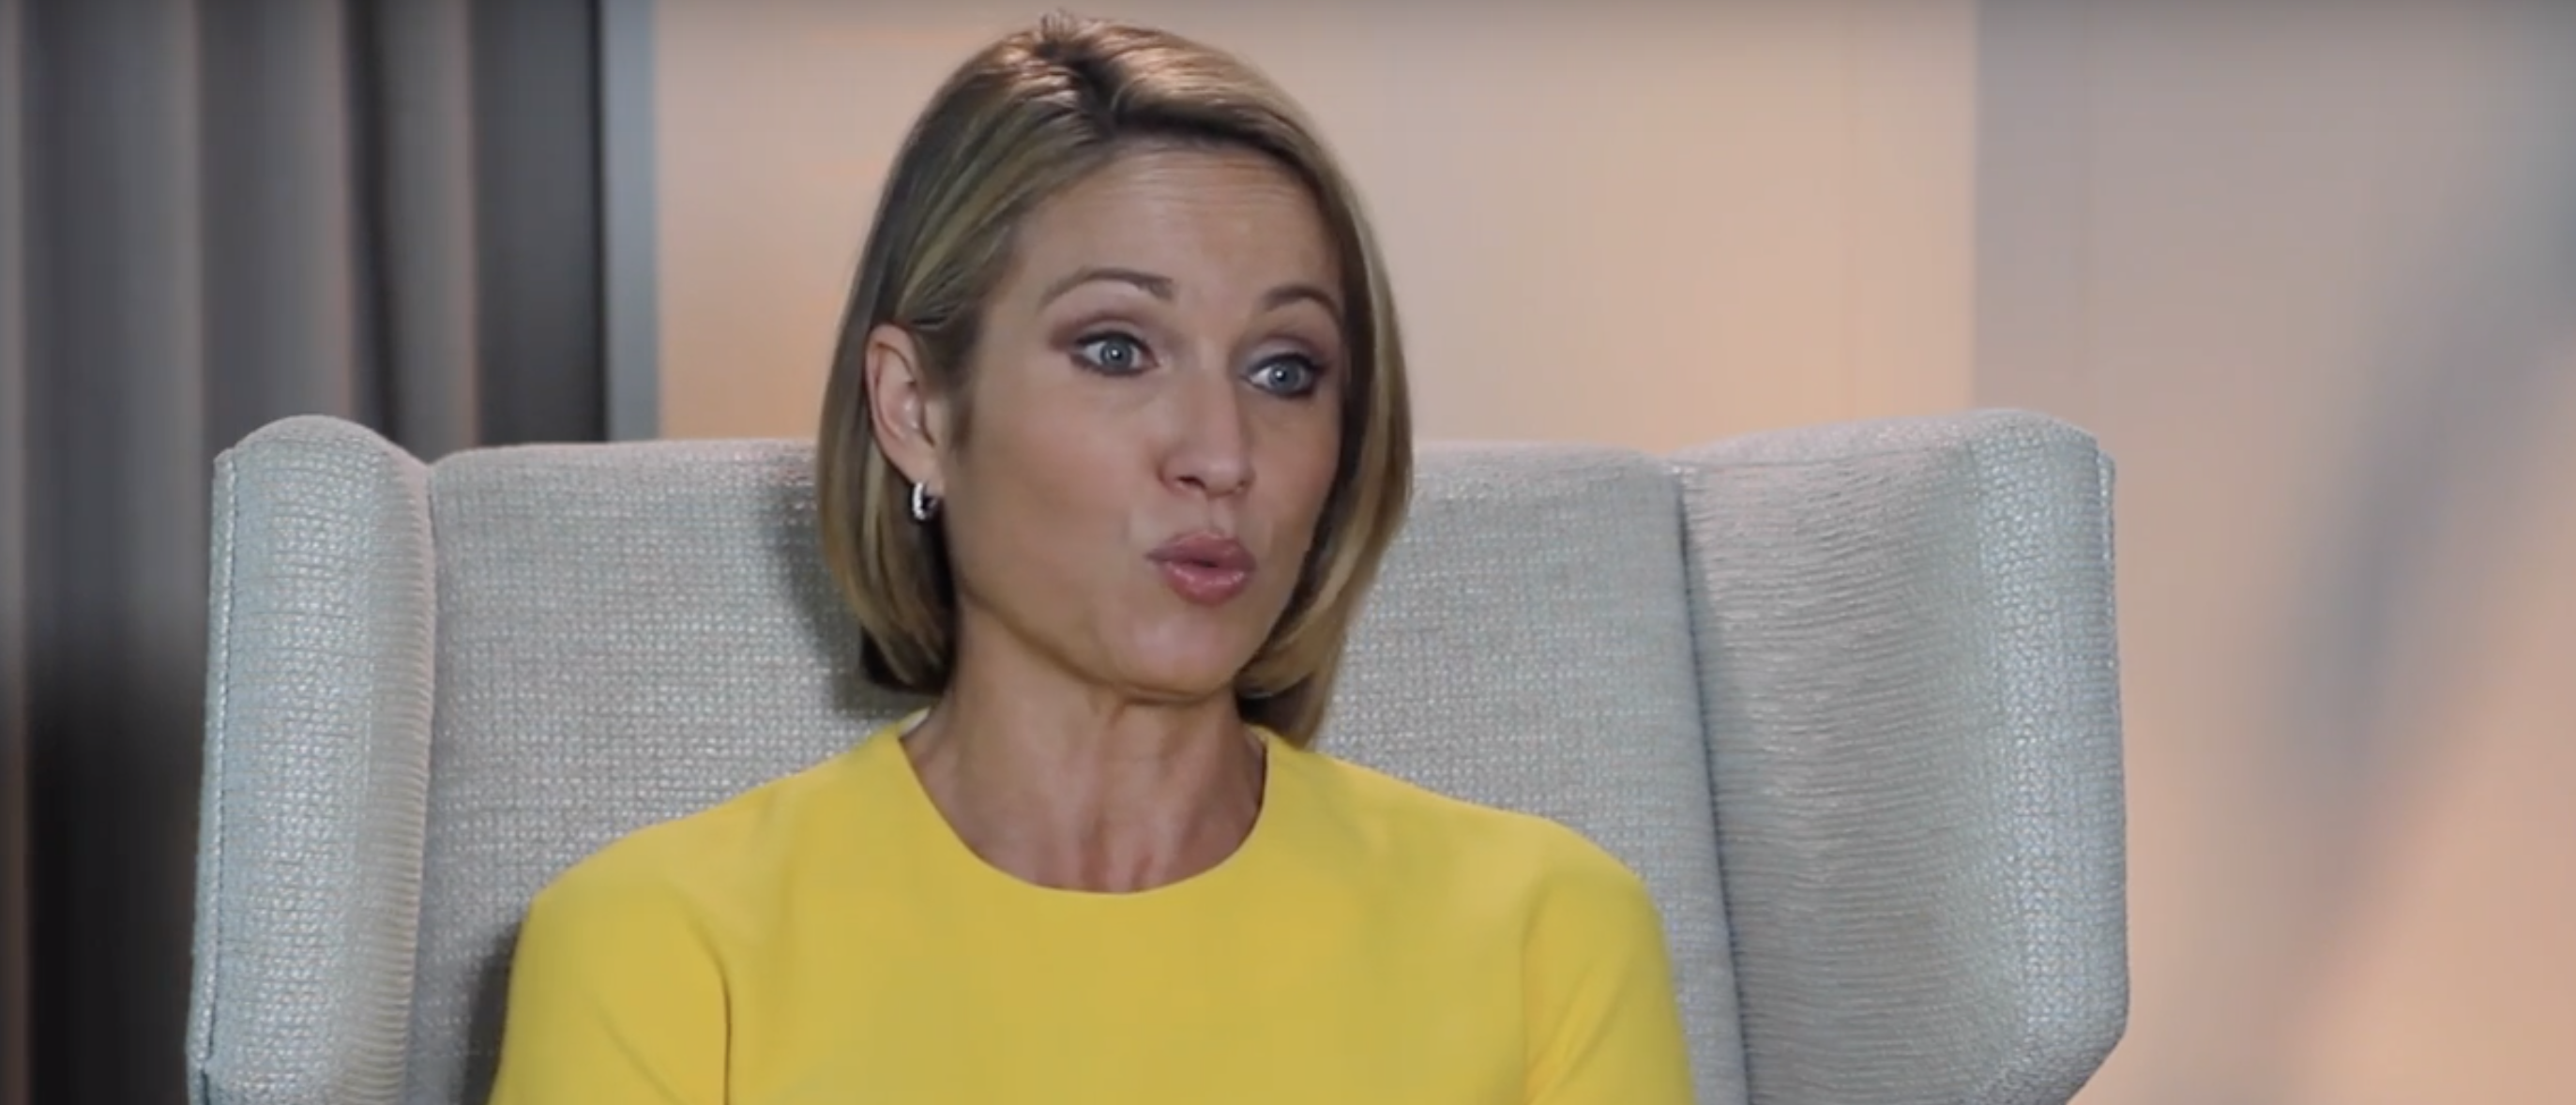 Report: ABC Desperate To Find Real Leaker Of Amy Robach Tape